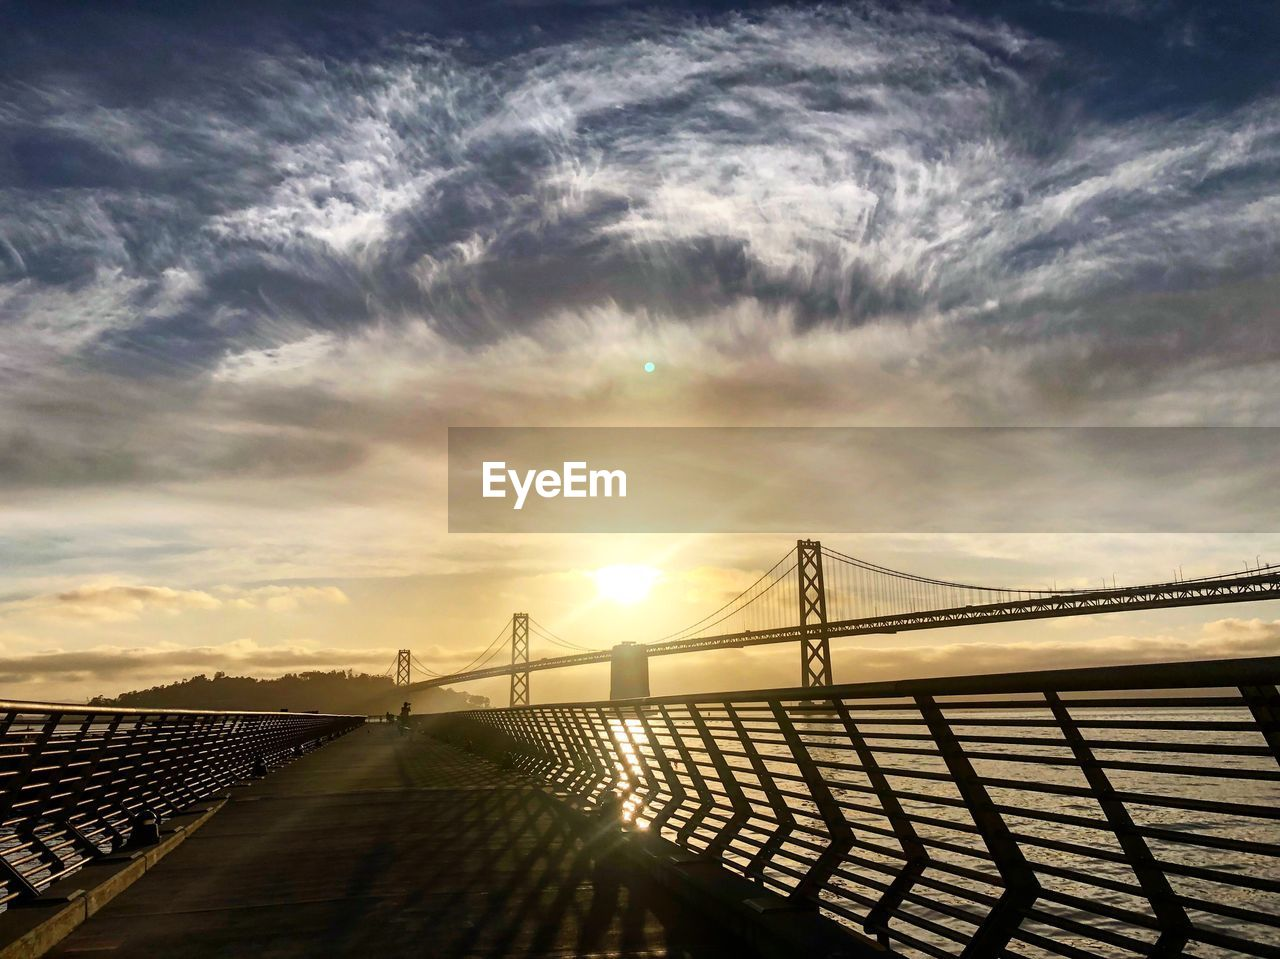 sky, cloud - sky, bridge, sunlight, architecture, connection, sun, nature, built structure, bridge - man made structure, sunset, outdoors, beauty in nature, no people, railing, scenics - nature, tranquility, lens flare, sunbeam, water, bright